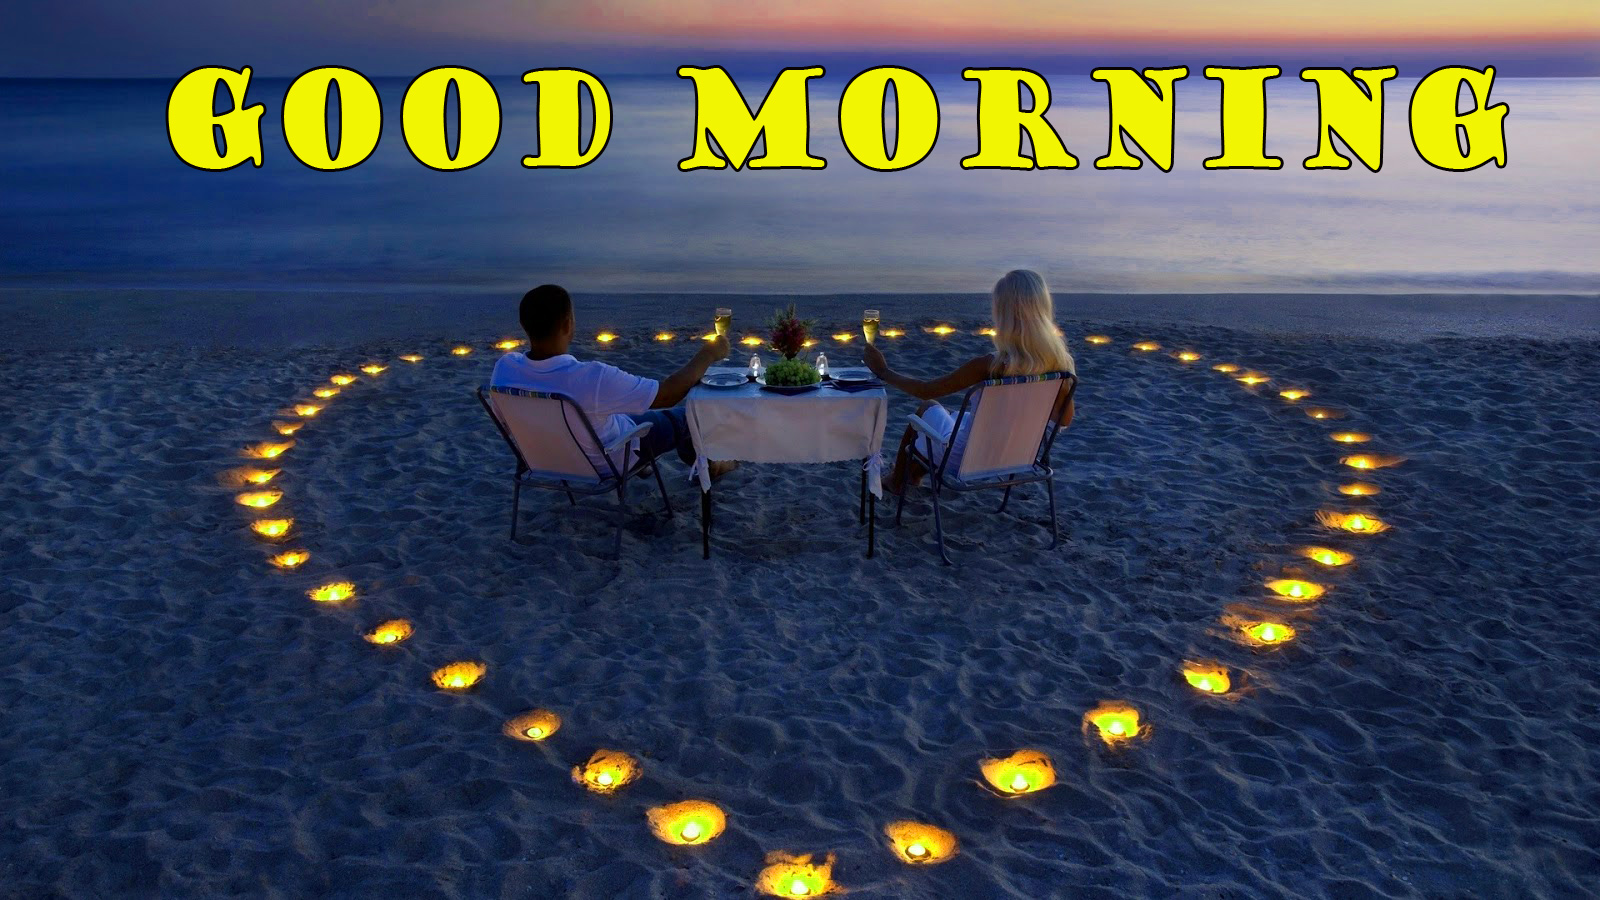 Special Wonderful Good Morning Images Pictures Photo HD Download